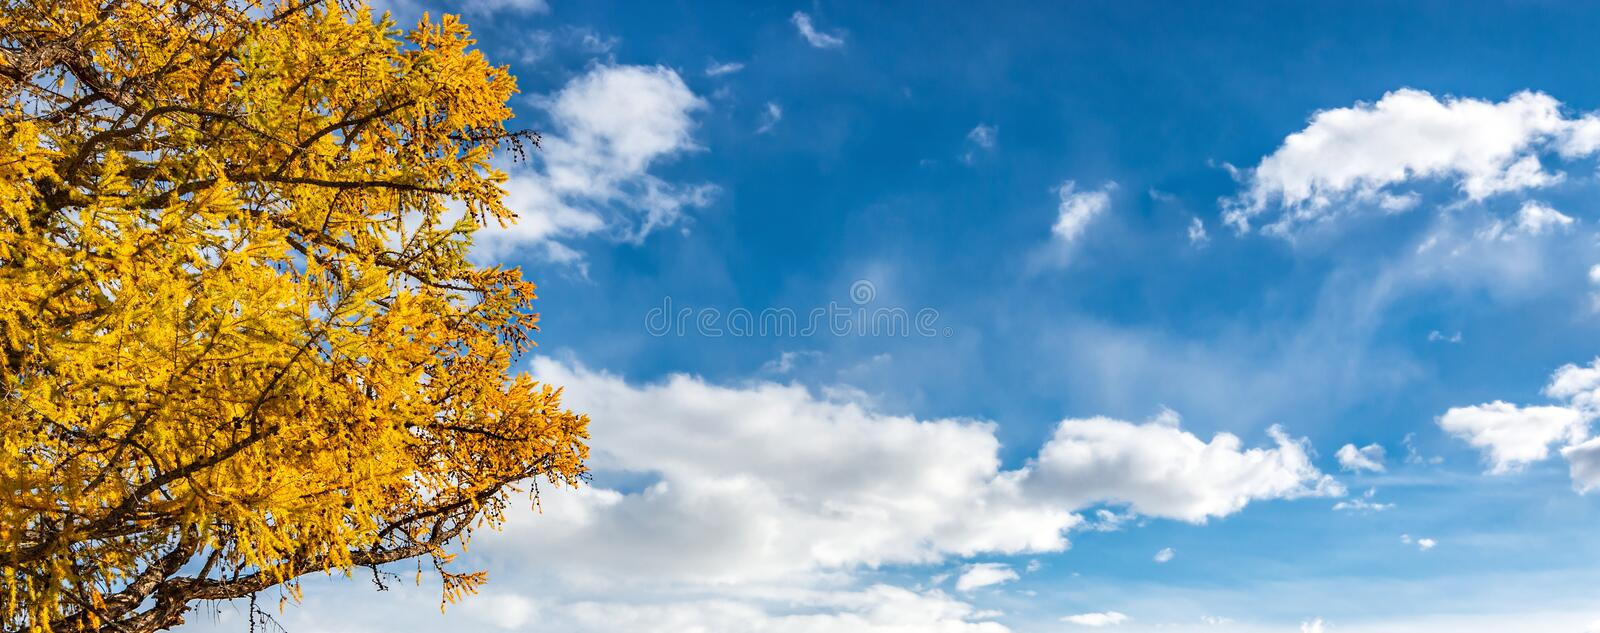 Autumn tree on a background of sky with clouds royalty free stock images